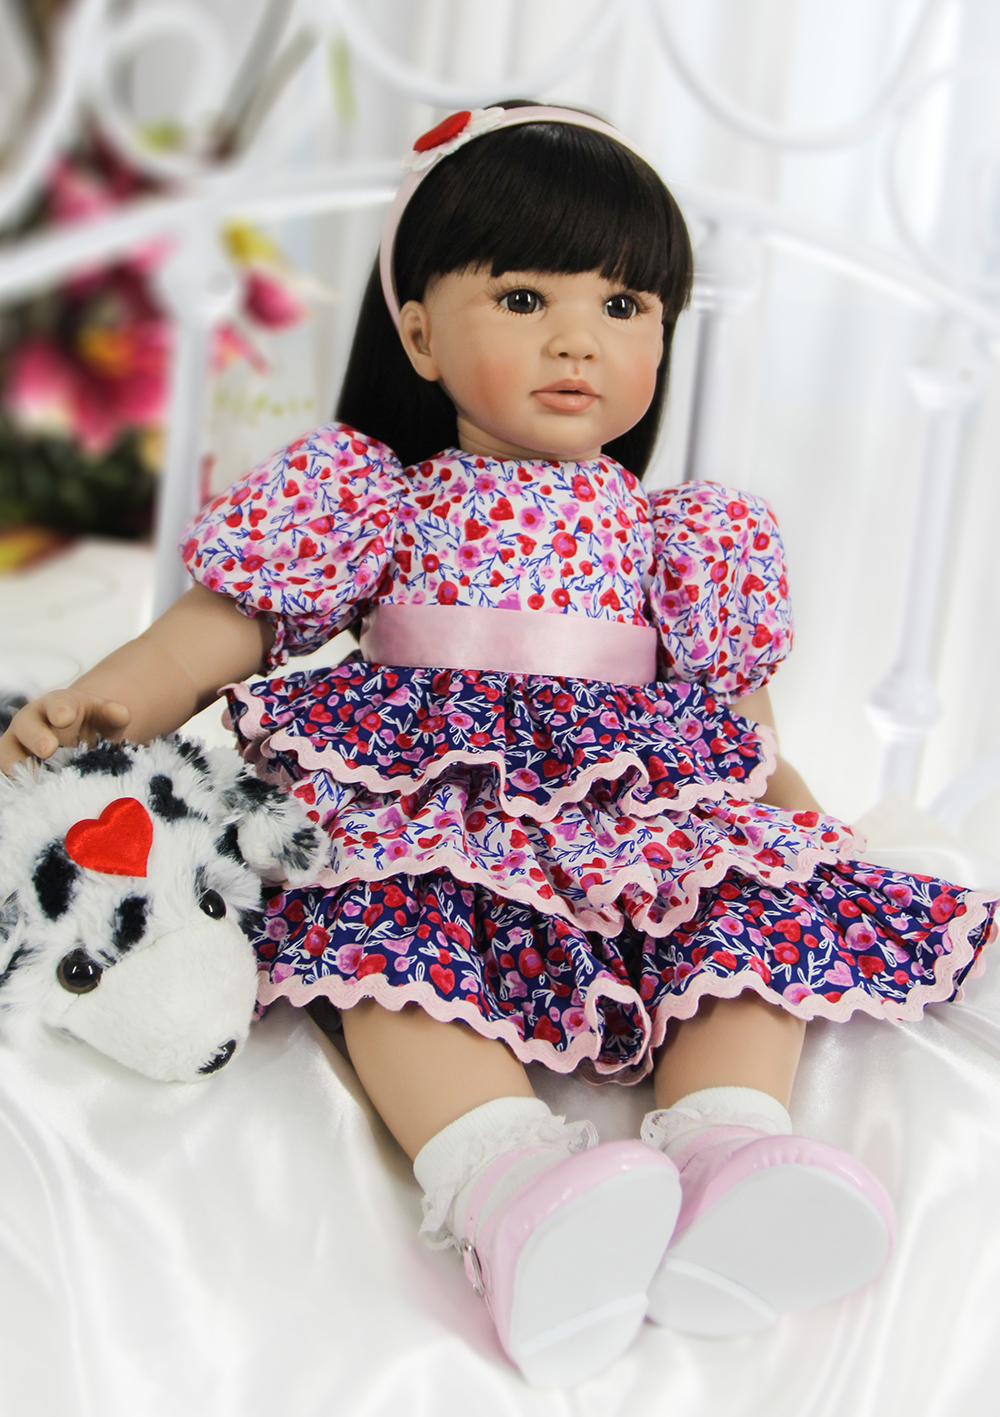 Pursue 24/60 cm New Real Looking Lifelike Princess Doll Reborn Toddler Silicone Baby Girl Doll for Girl Birthday Christmas Gift sd bjd plastic lifelike princess girl doll dressing exercise doll for kids high end christmas new year gift boutique collection